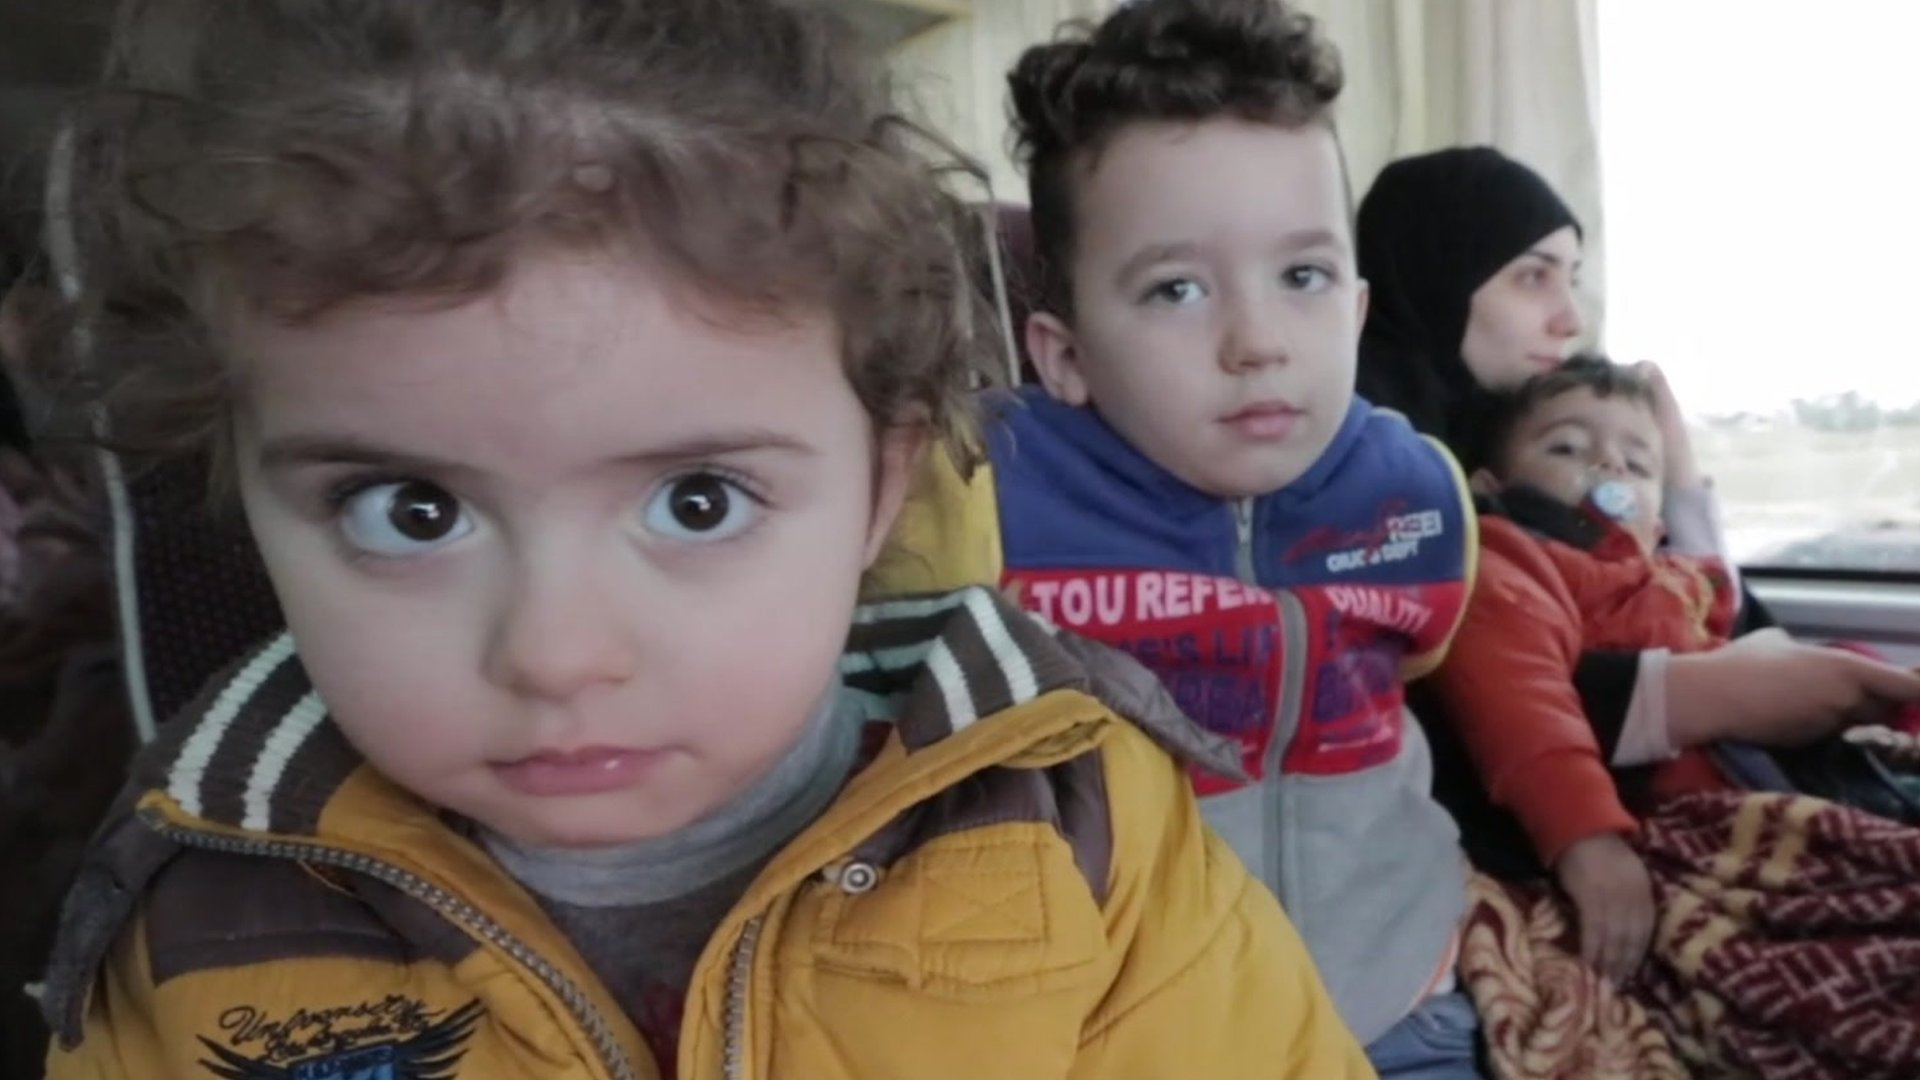 The Syrians returning home after years of fleeing war